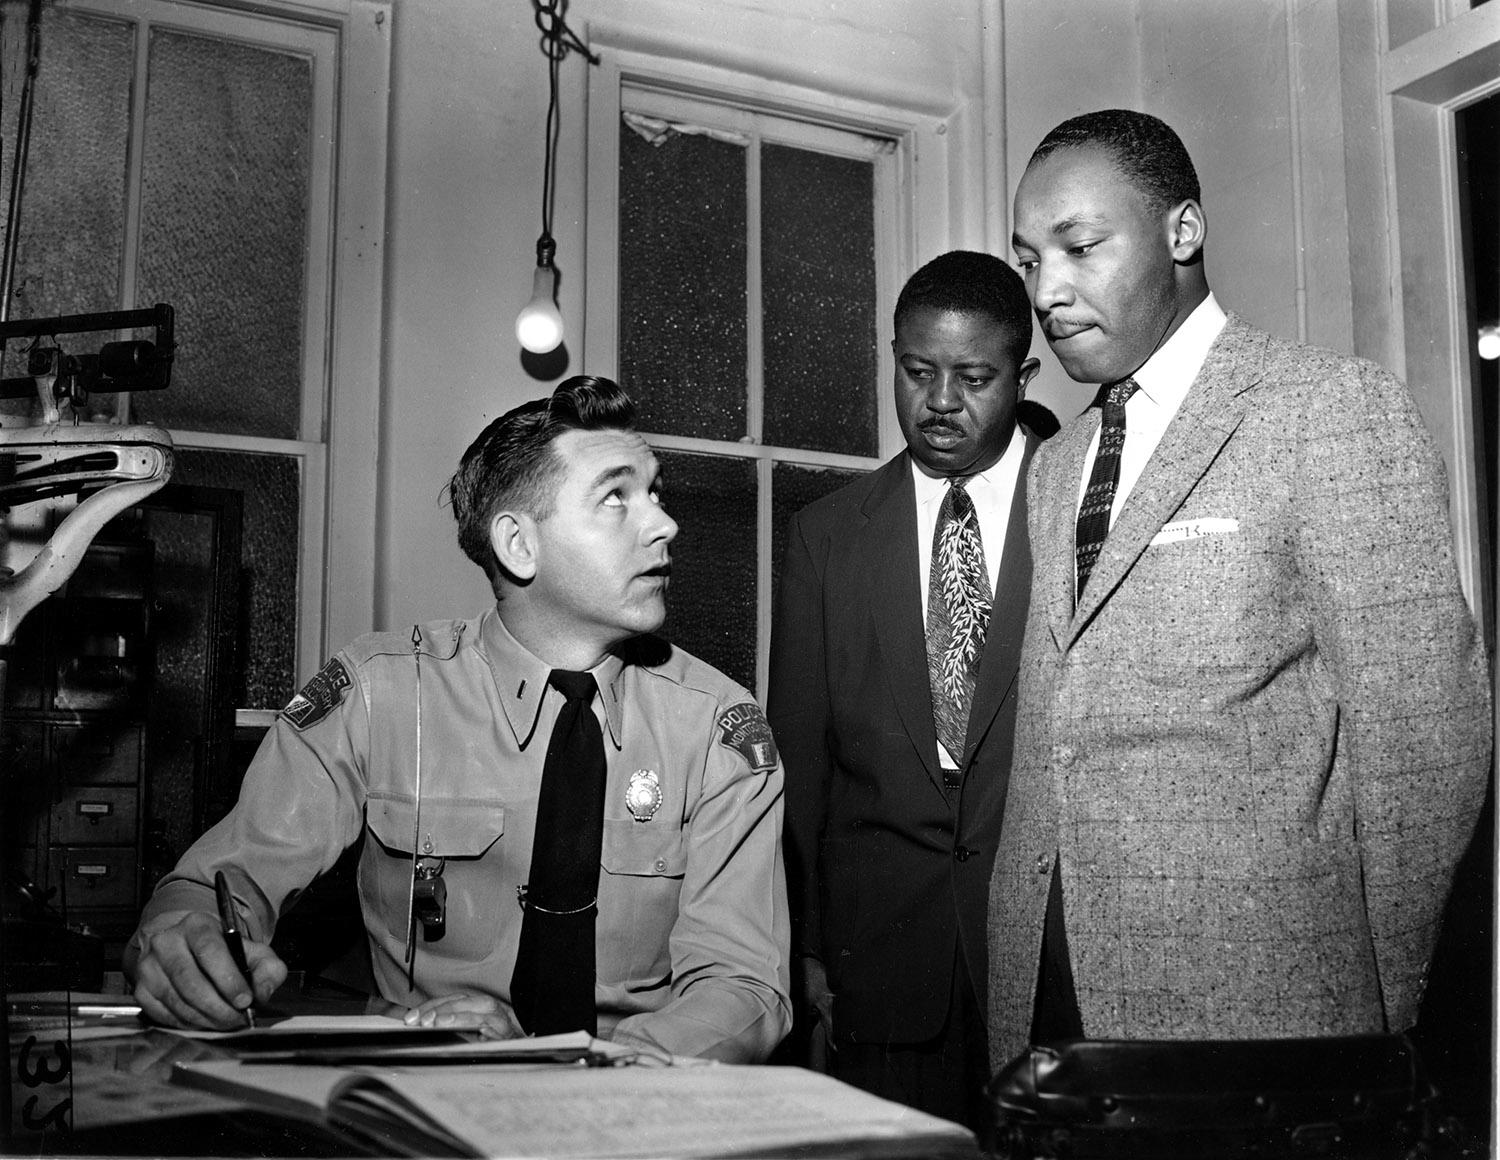 <p>The Rev. Martin Luther King Jr., right, accompanied by Rev. Ralph D. Abernathy, center, is booked by city police Lt. D.H. Lackey in Montgomery, Ala., on Feb. 23, 1956. The civil rights leaders are arrested on indictments turned by the Grand Jury in the bus boycott. (AP Photo/Gene Herrick) </p>